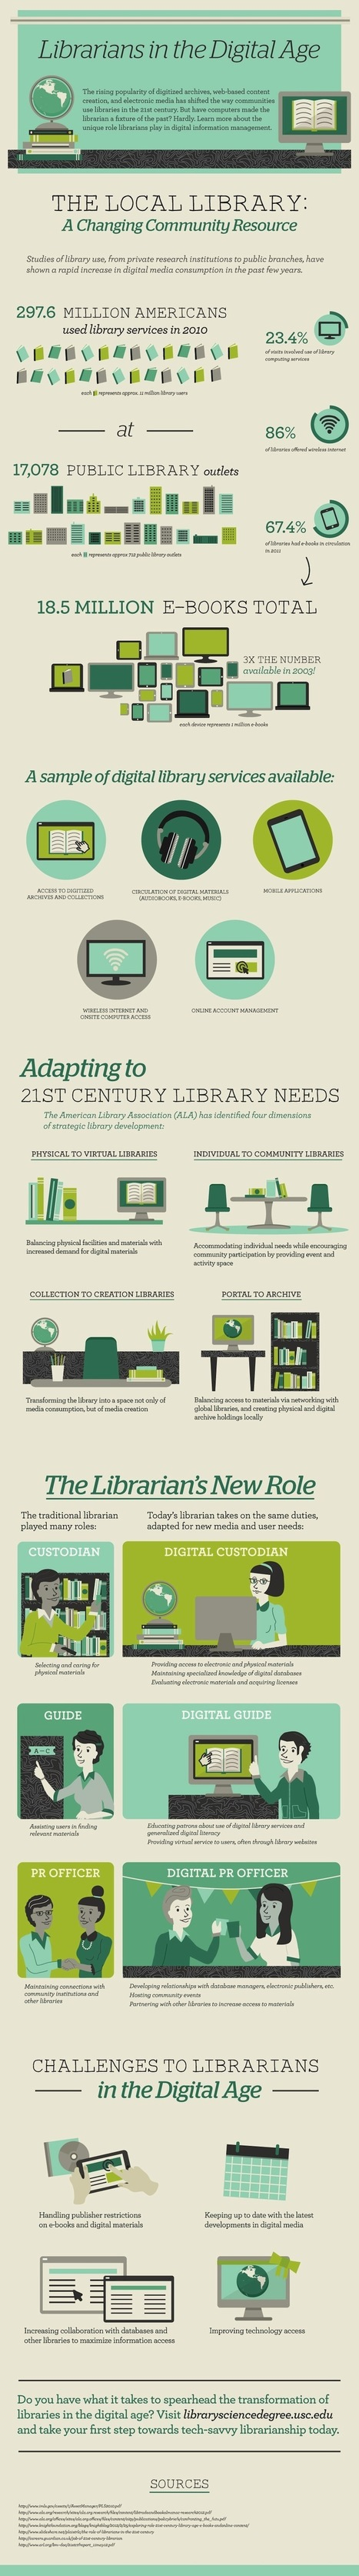 In digital age, librarians are needed more than ever [infographic] | Educational Technology | Scoop.it